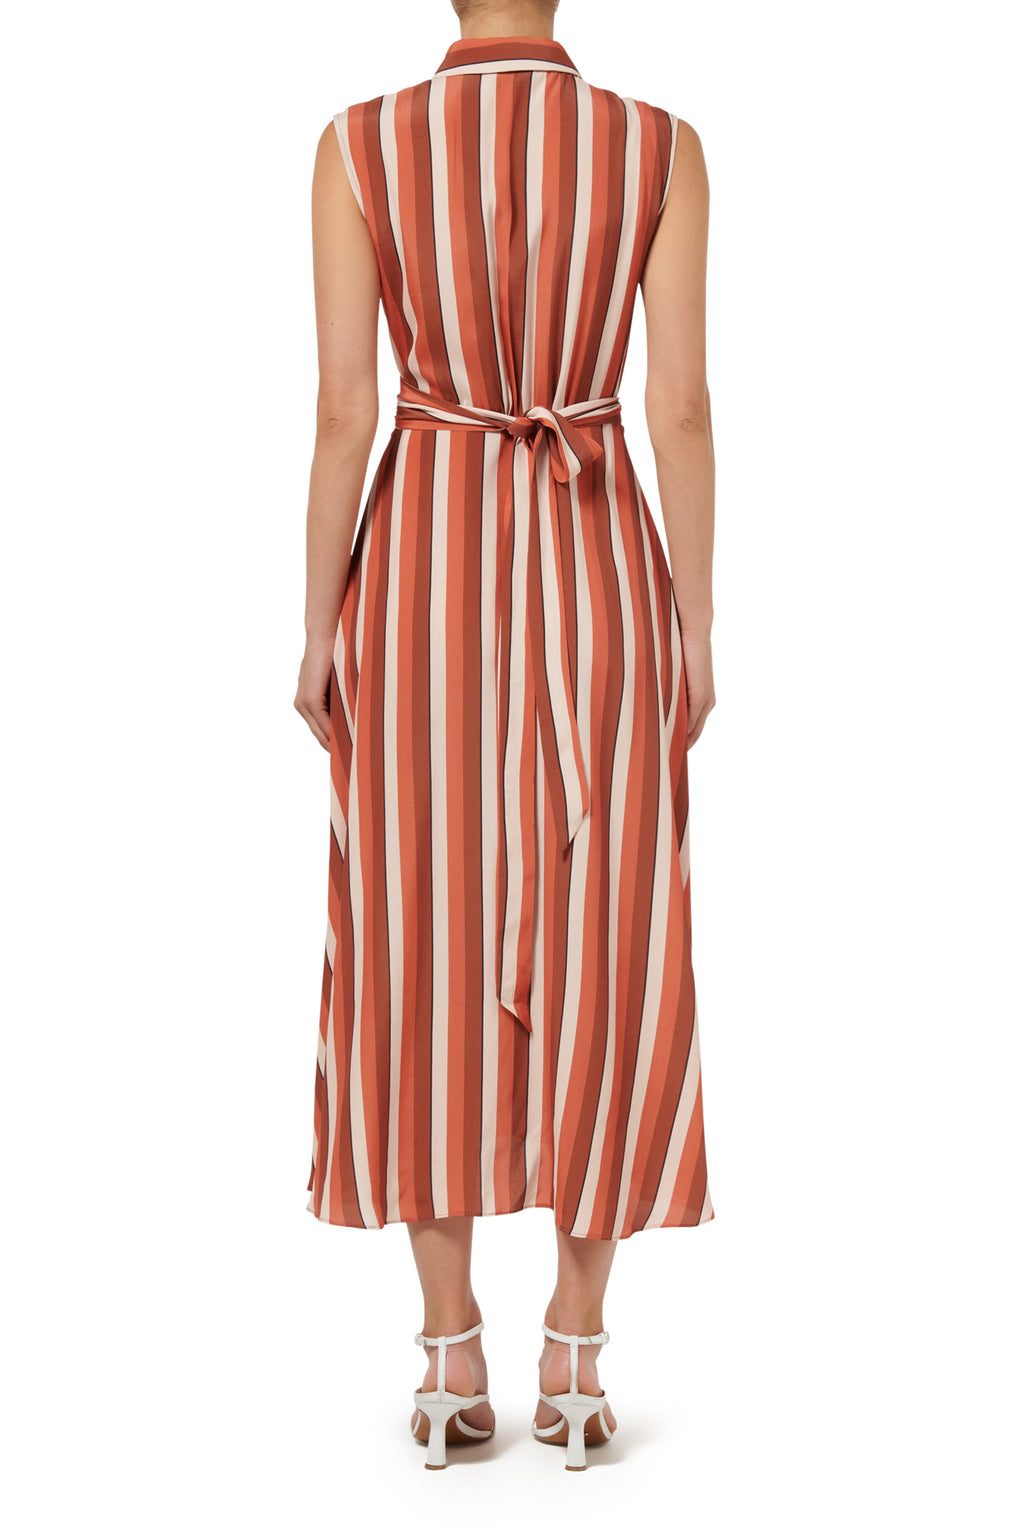 Calypso Sleeveless Shirt Dress - Peach Stripe